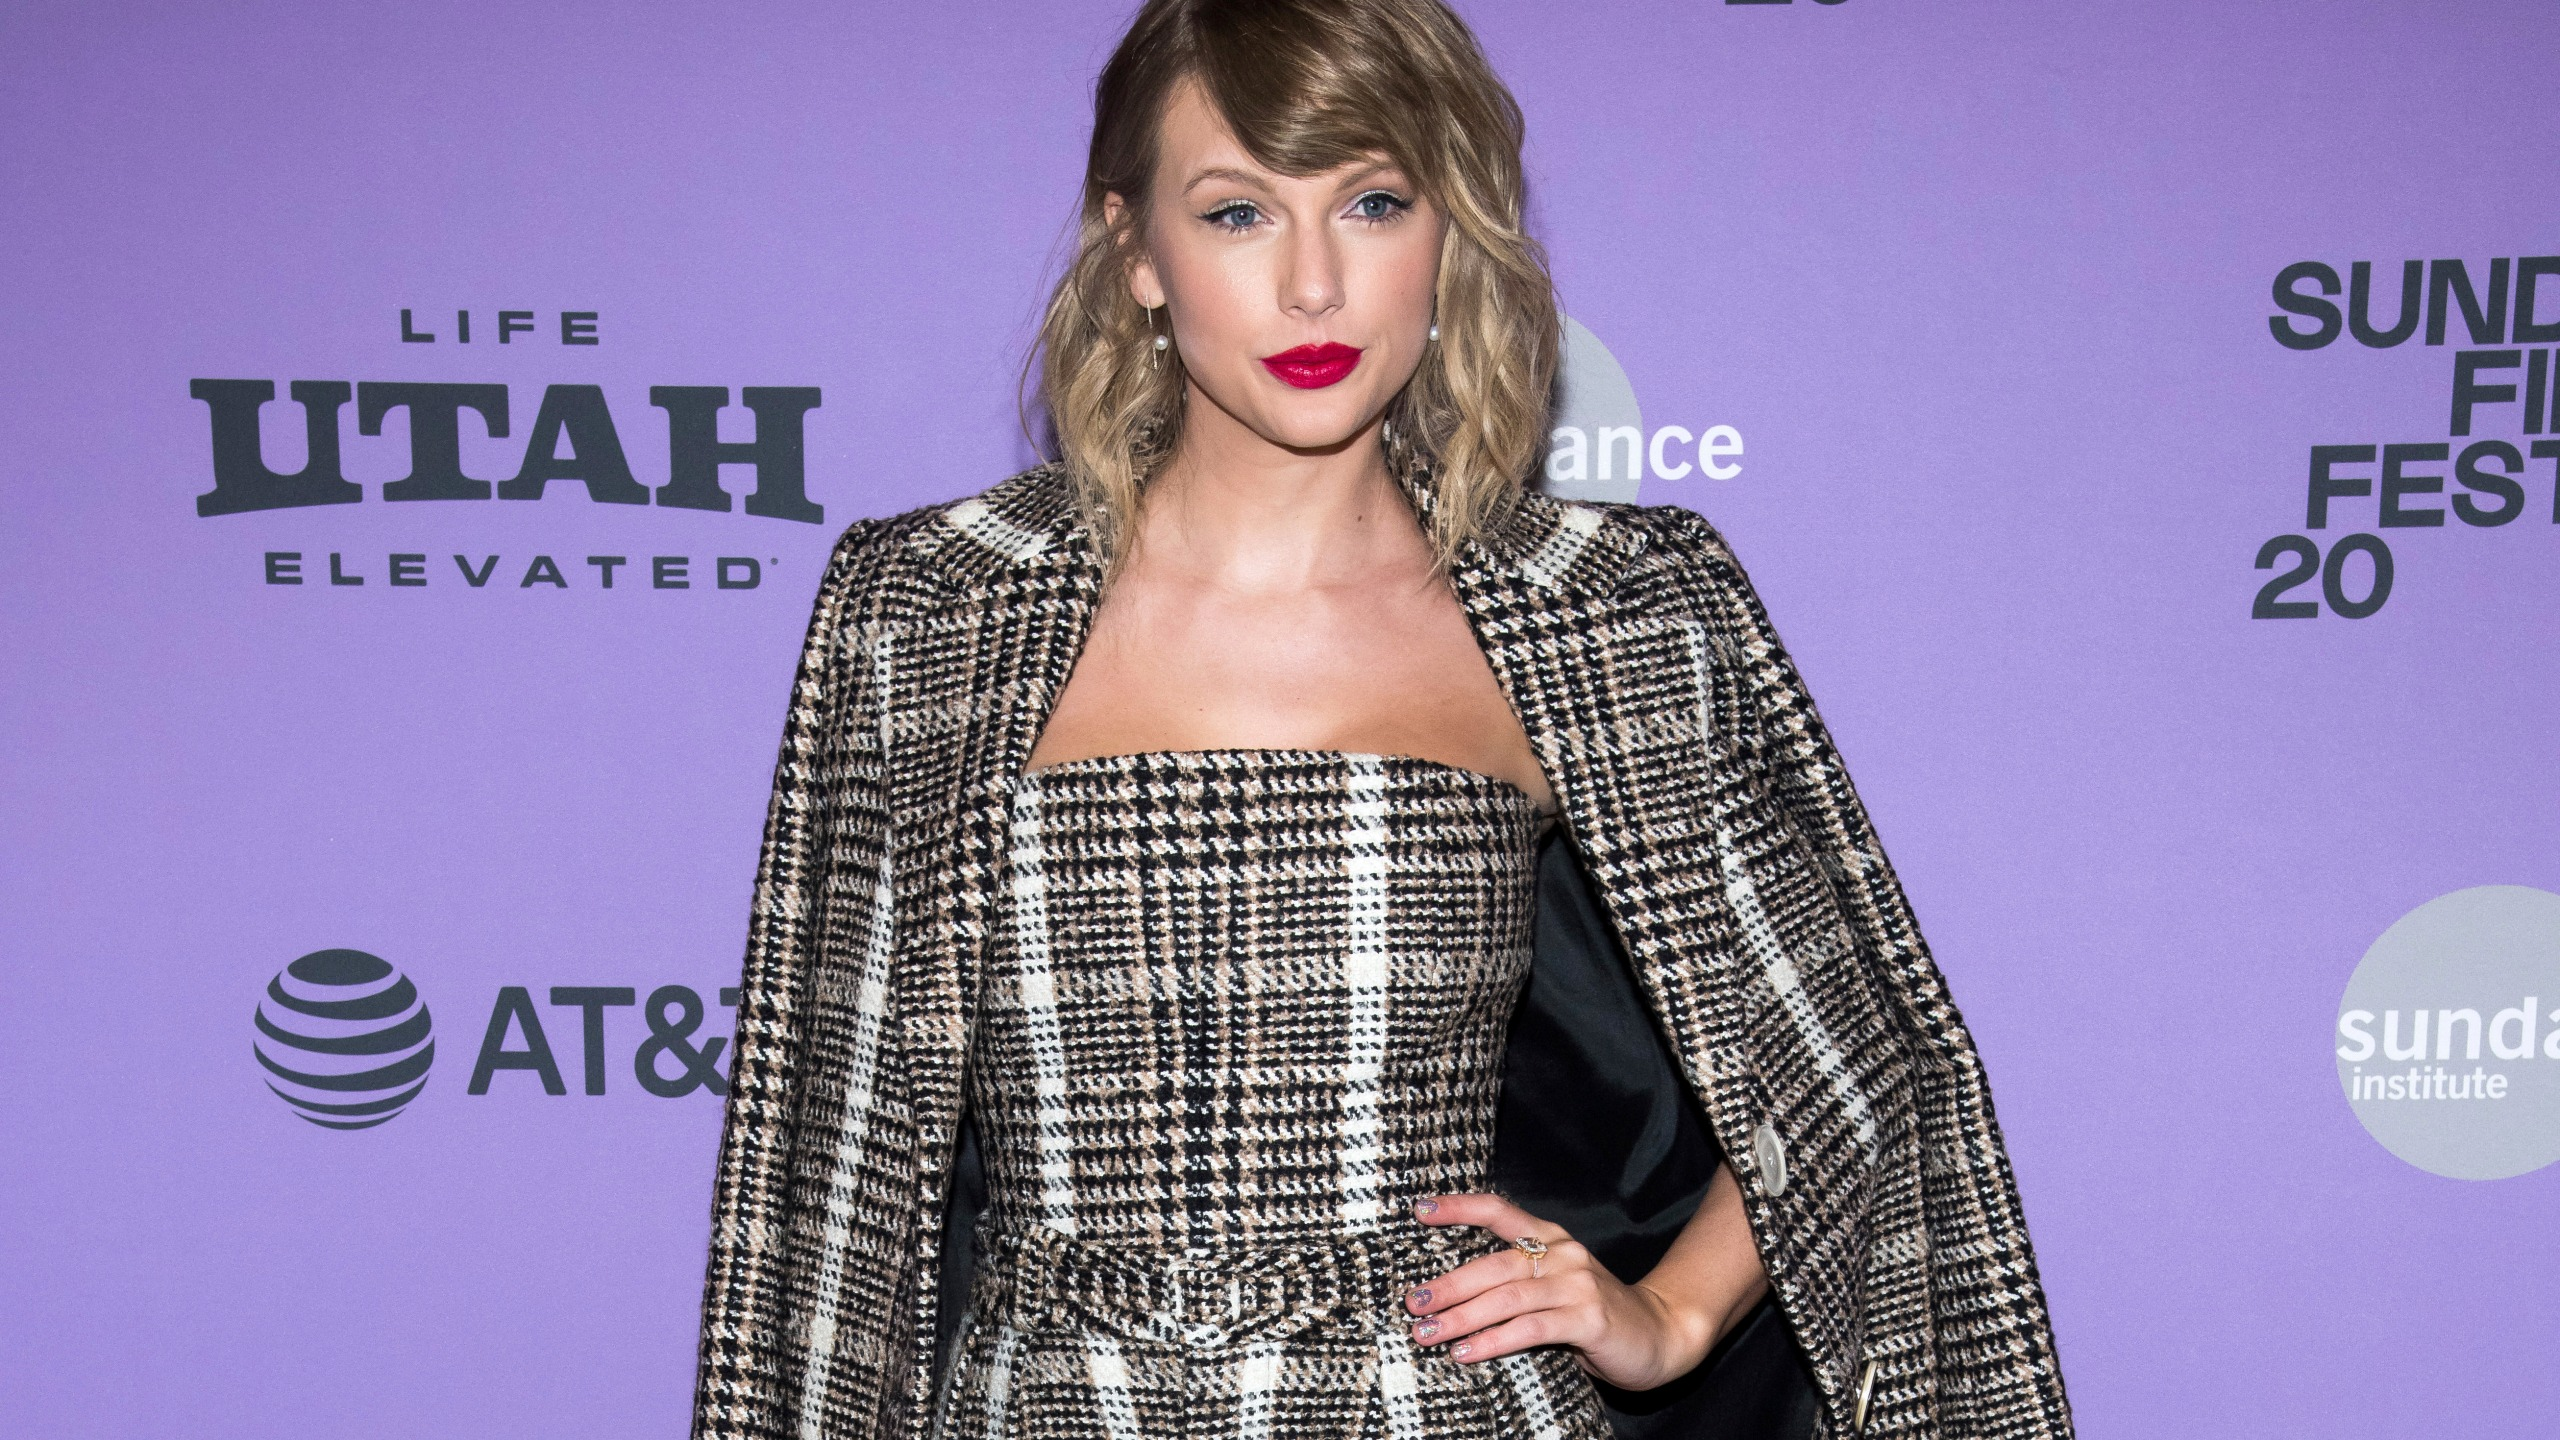 Taylor Swift Surprises Some Of Her Fans With Money Donations Wgn